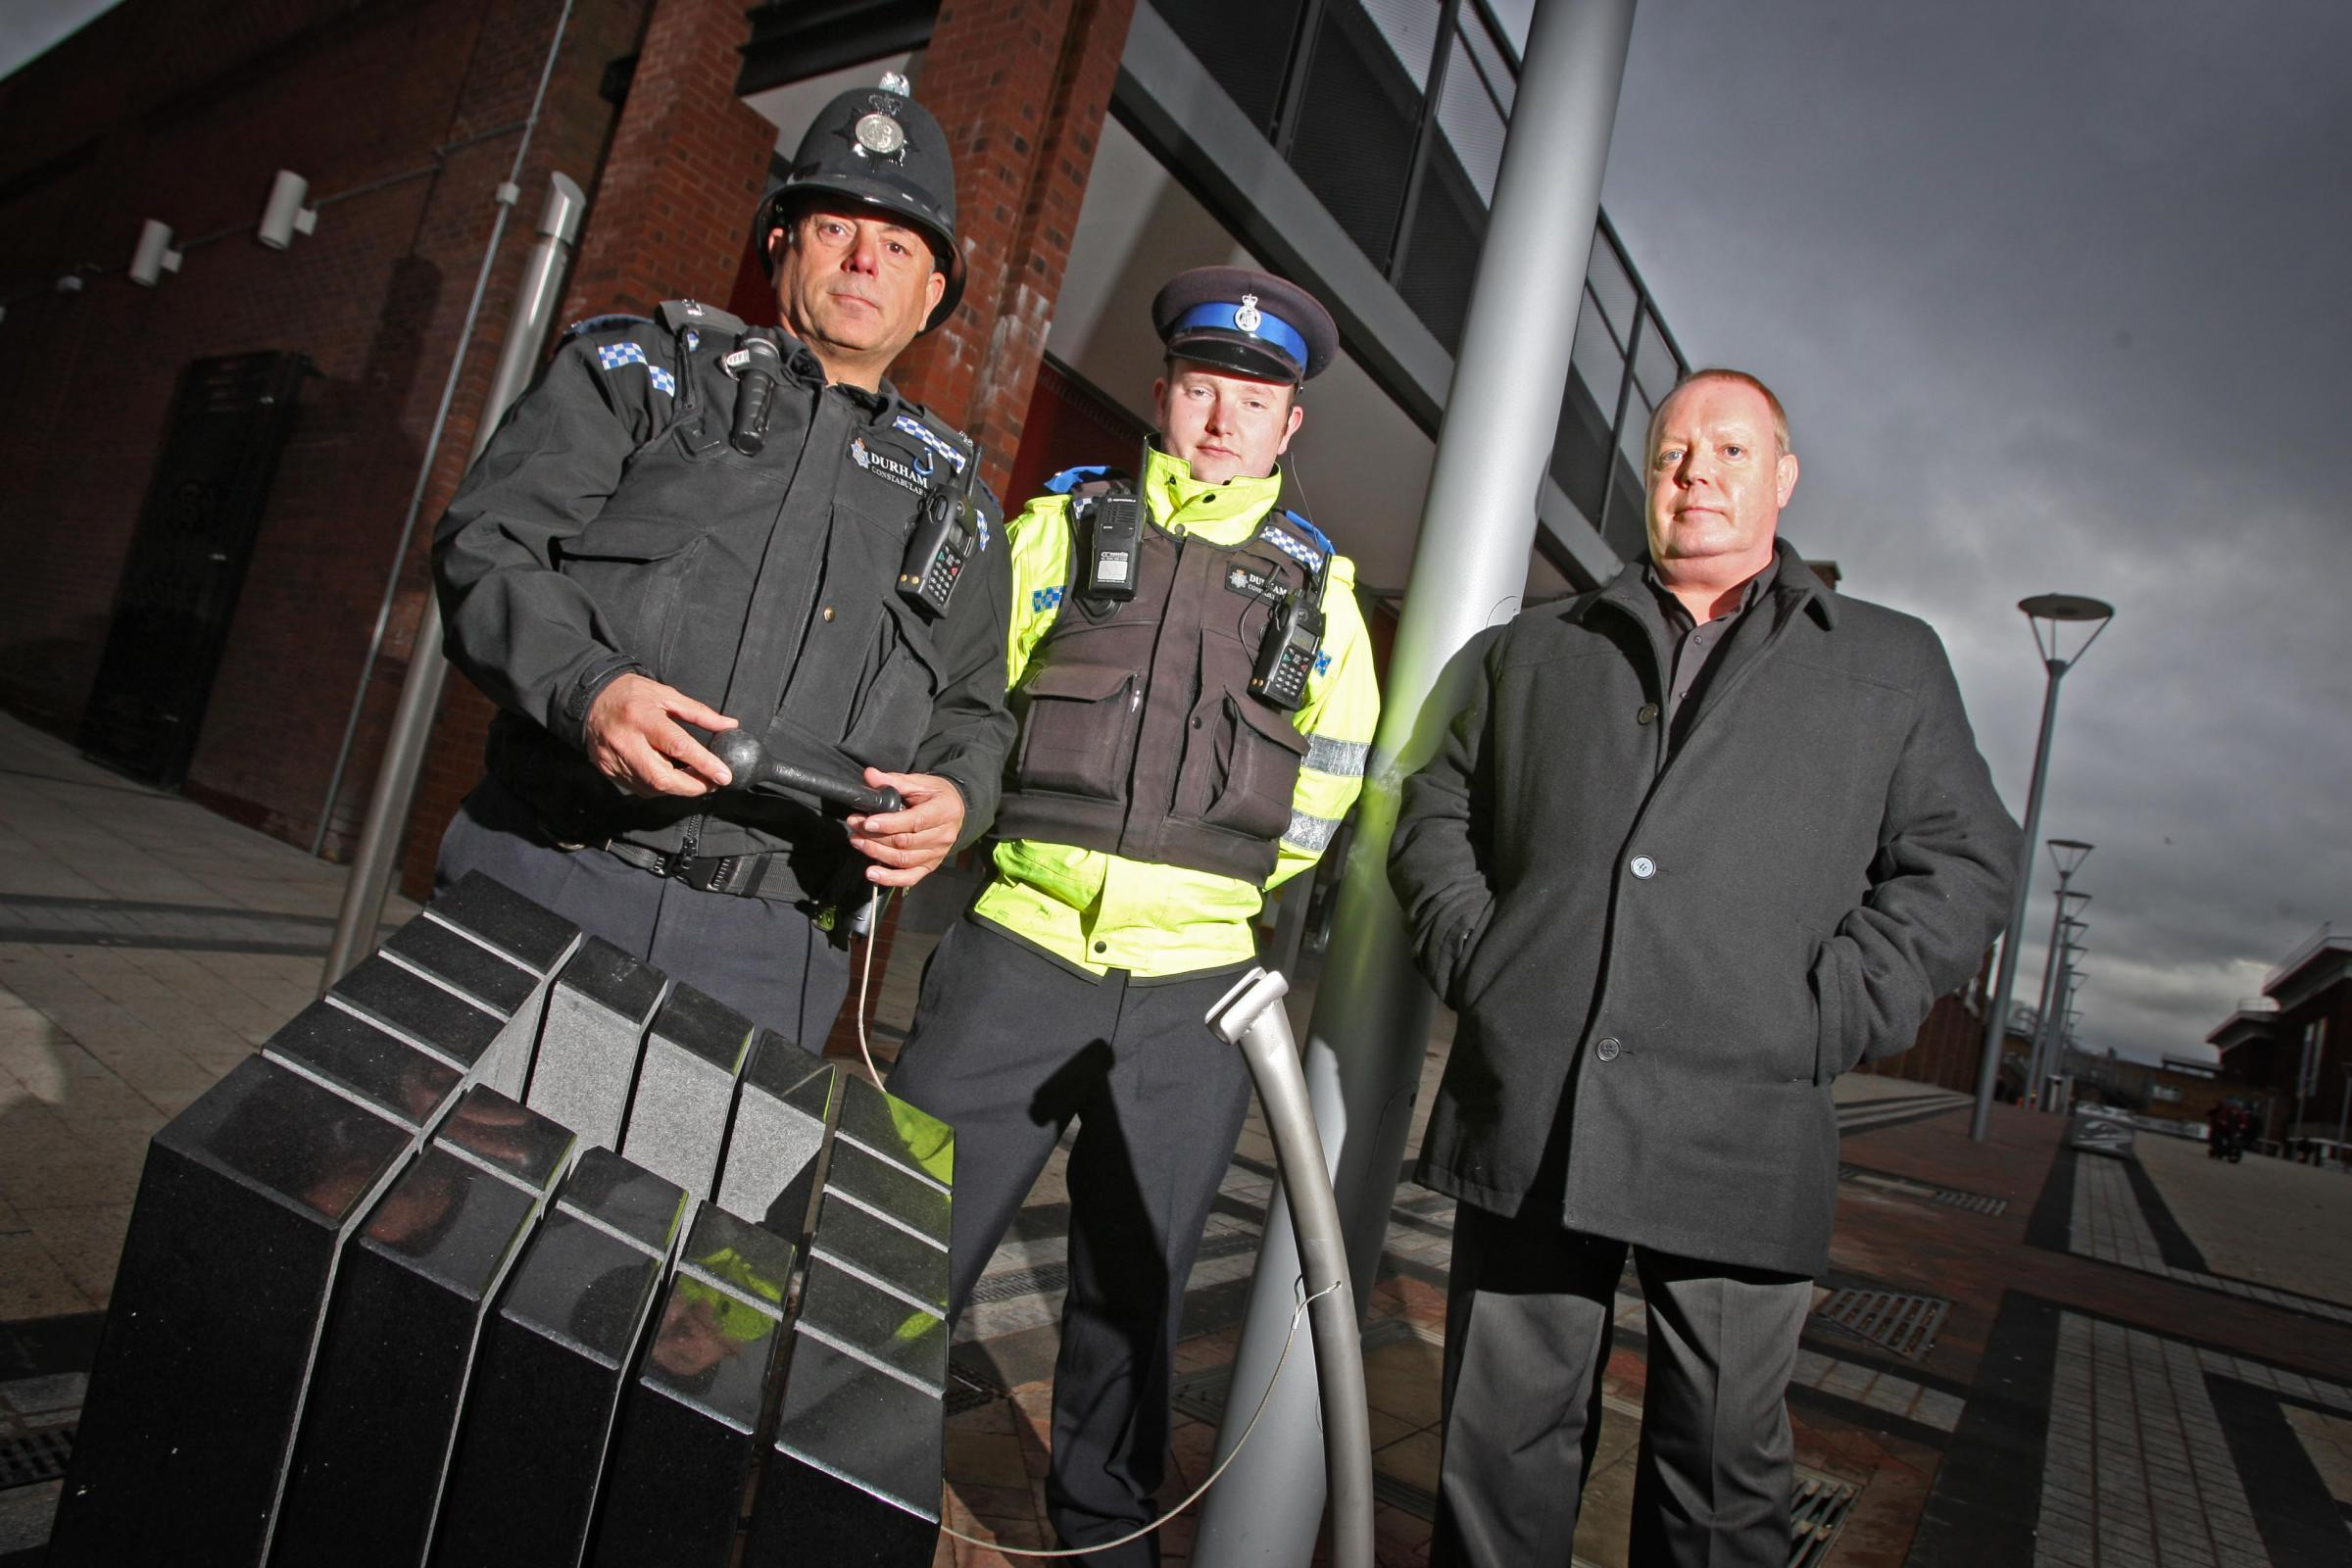 Vandals have caused thousands of pounds-worth of damage to a sculpture that forms part of the £2m revamp of Newton Aycliffe. Pictured with the damaged sculpture are, (L to R), PC Keith Todd, PCSO Gavin Laycock and town centre manager Bryan Haldane